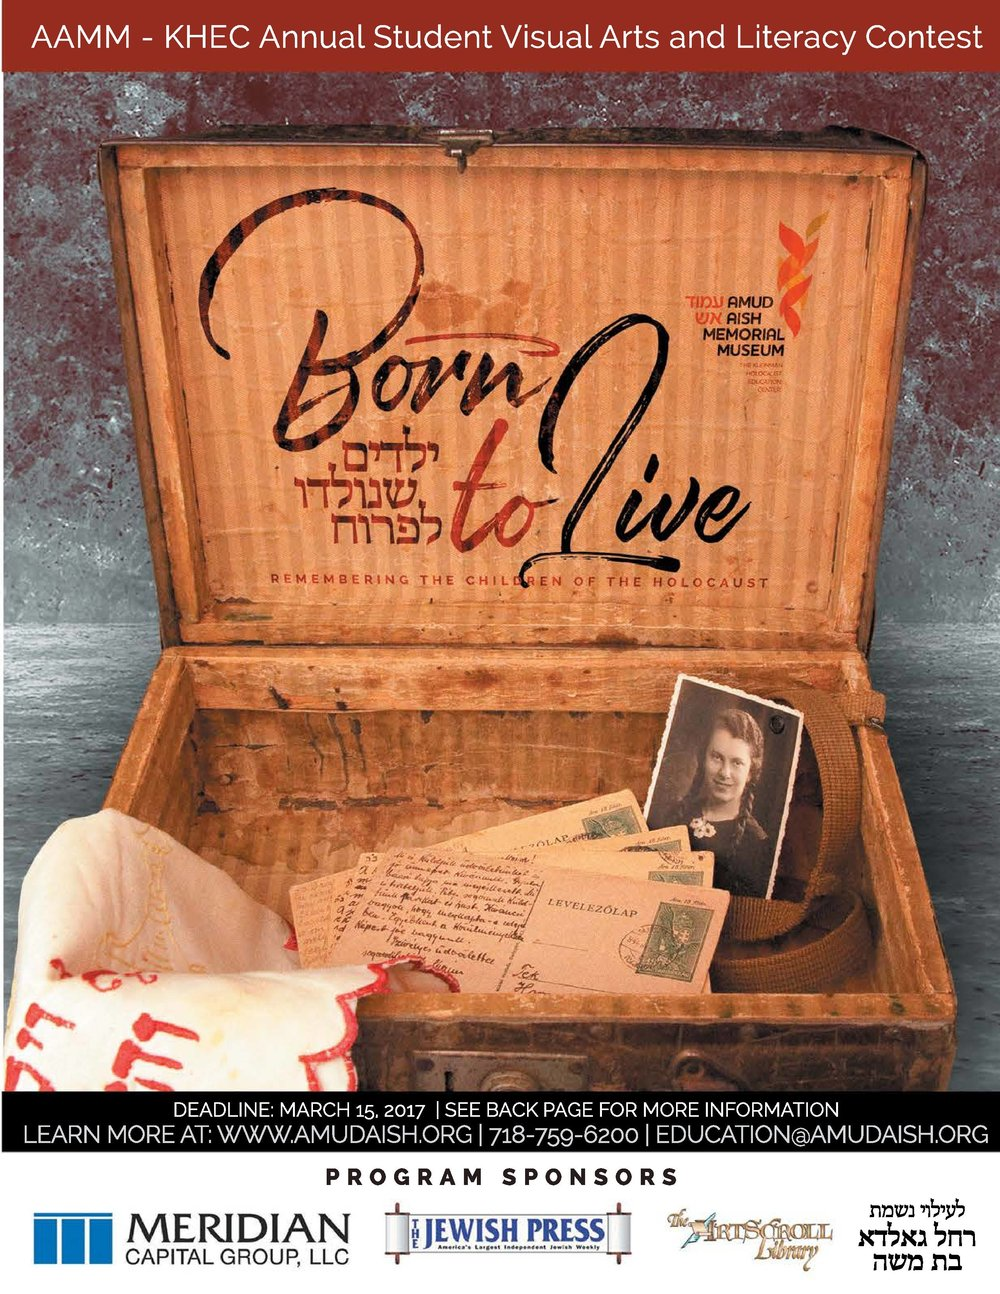 Born to live_Web version-1.jpg